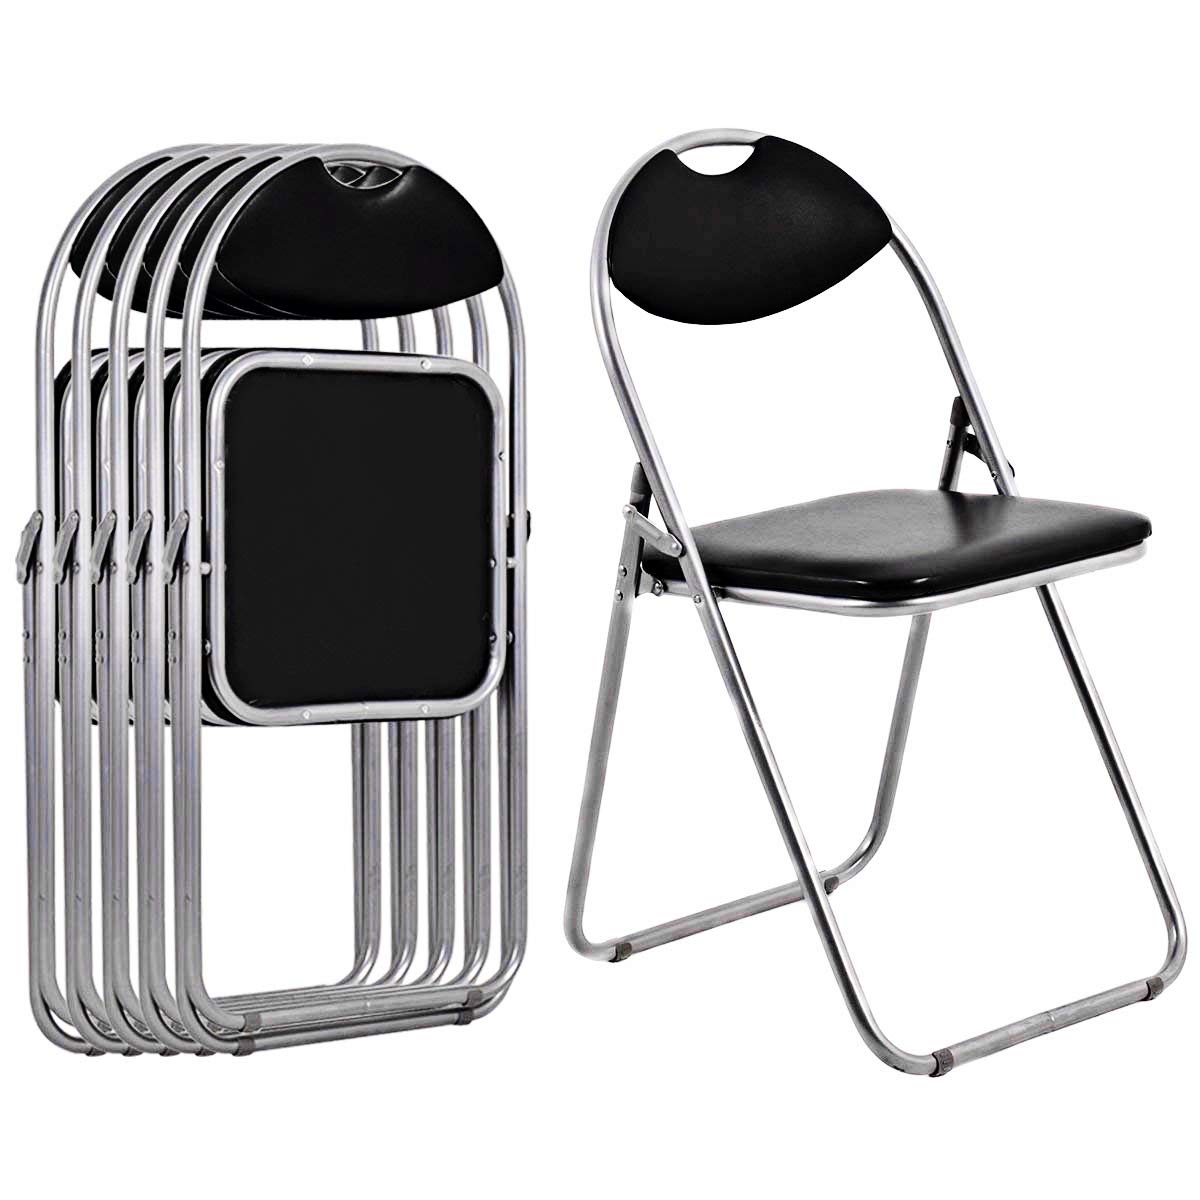 Giantex 6 PCS Folding Chair with Carrying Handle PU Leather and Metal Frame Cushioned Foldable Conference Chairs Set for Home Office Waiting Room Guest Reception Party, Black by Giantex